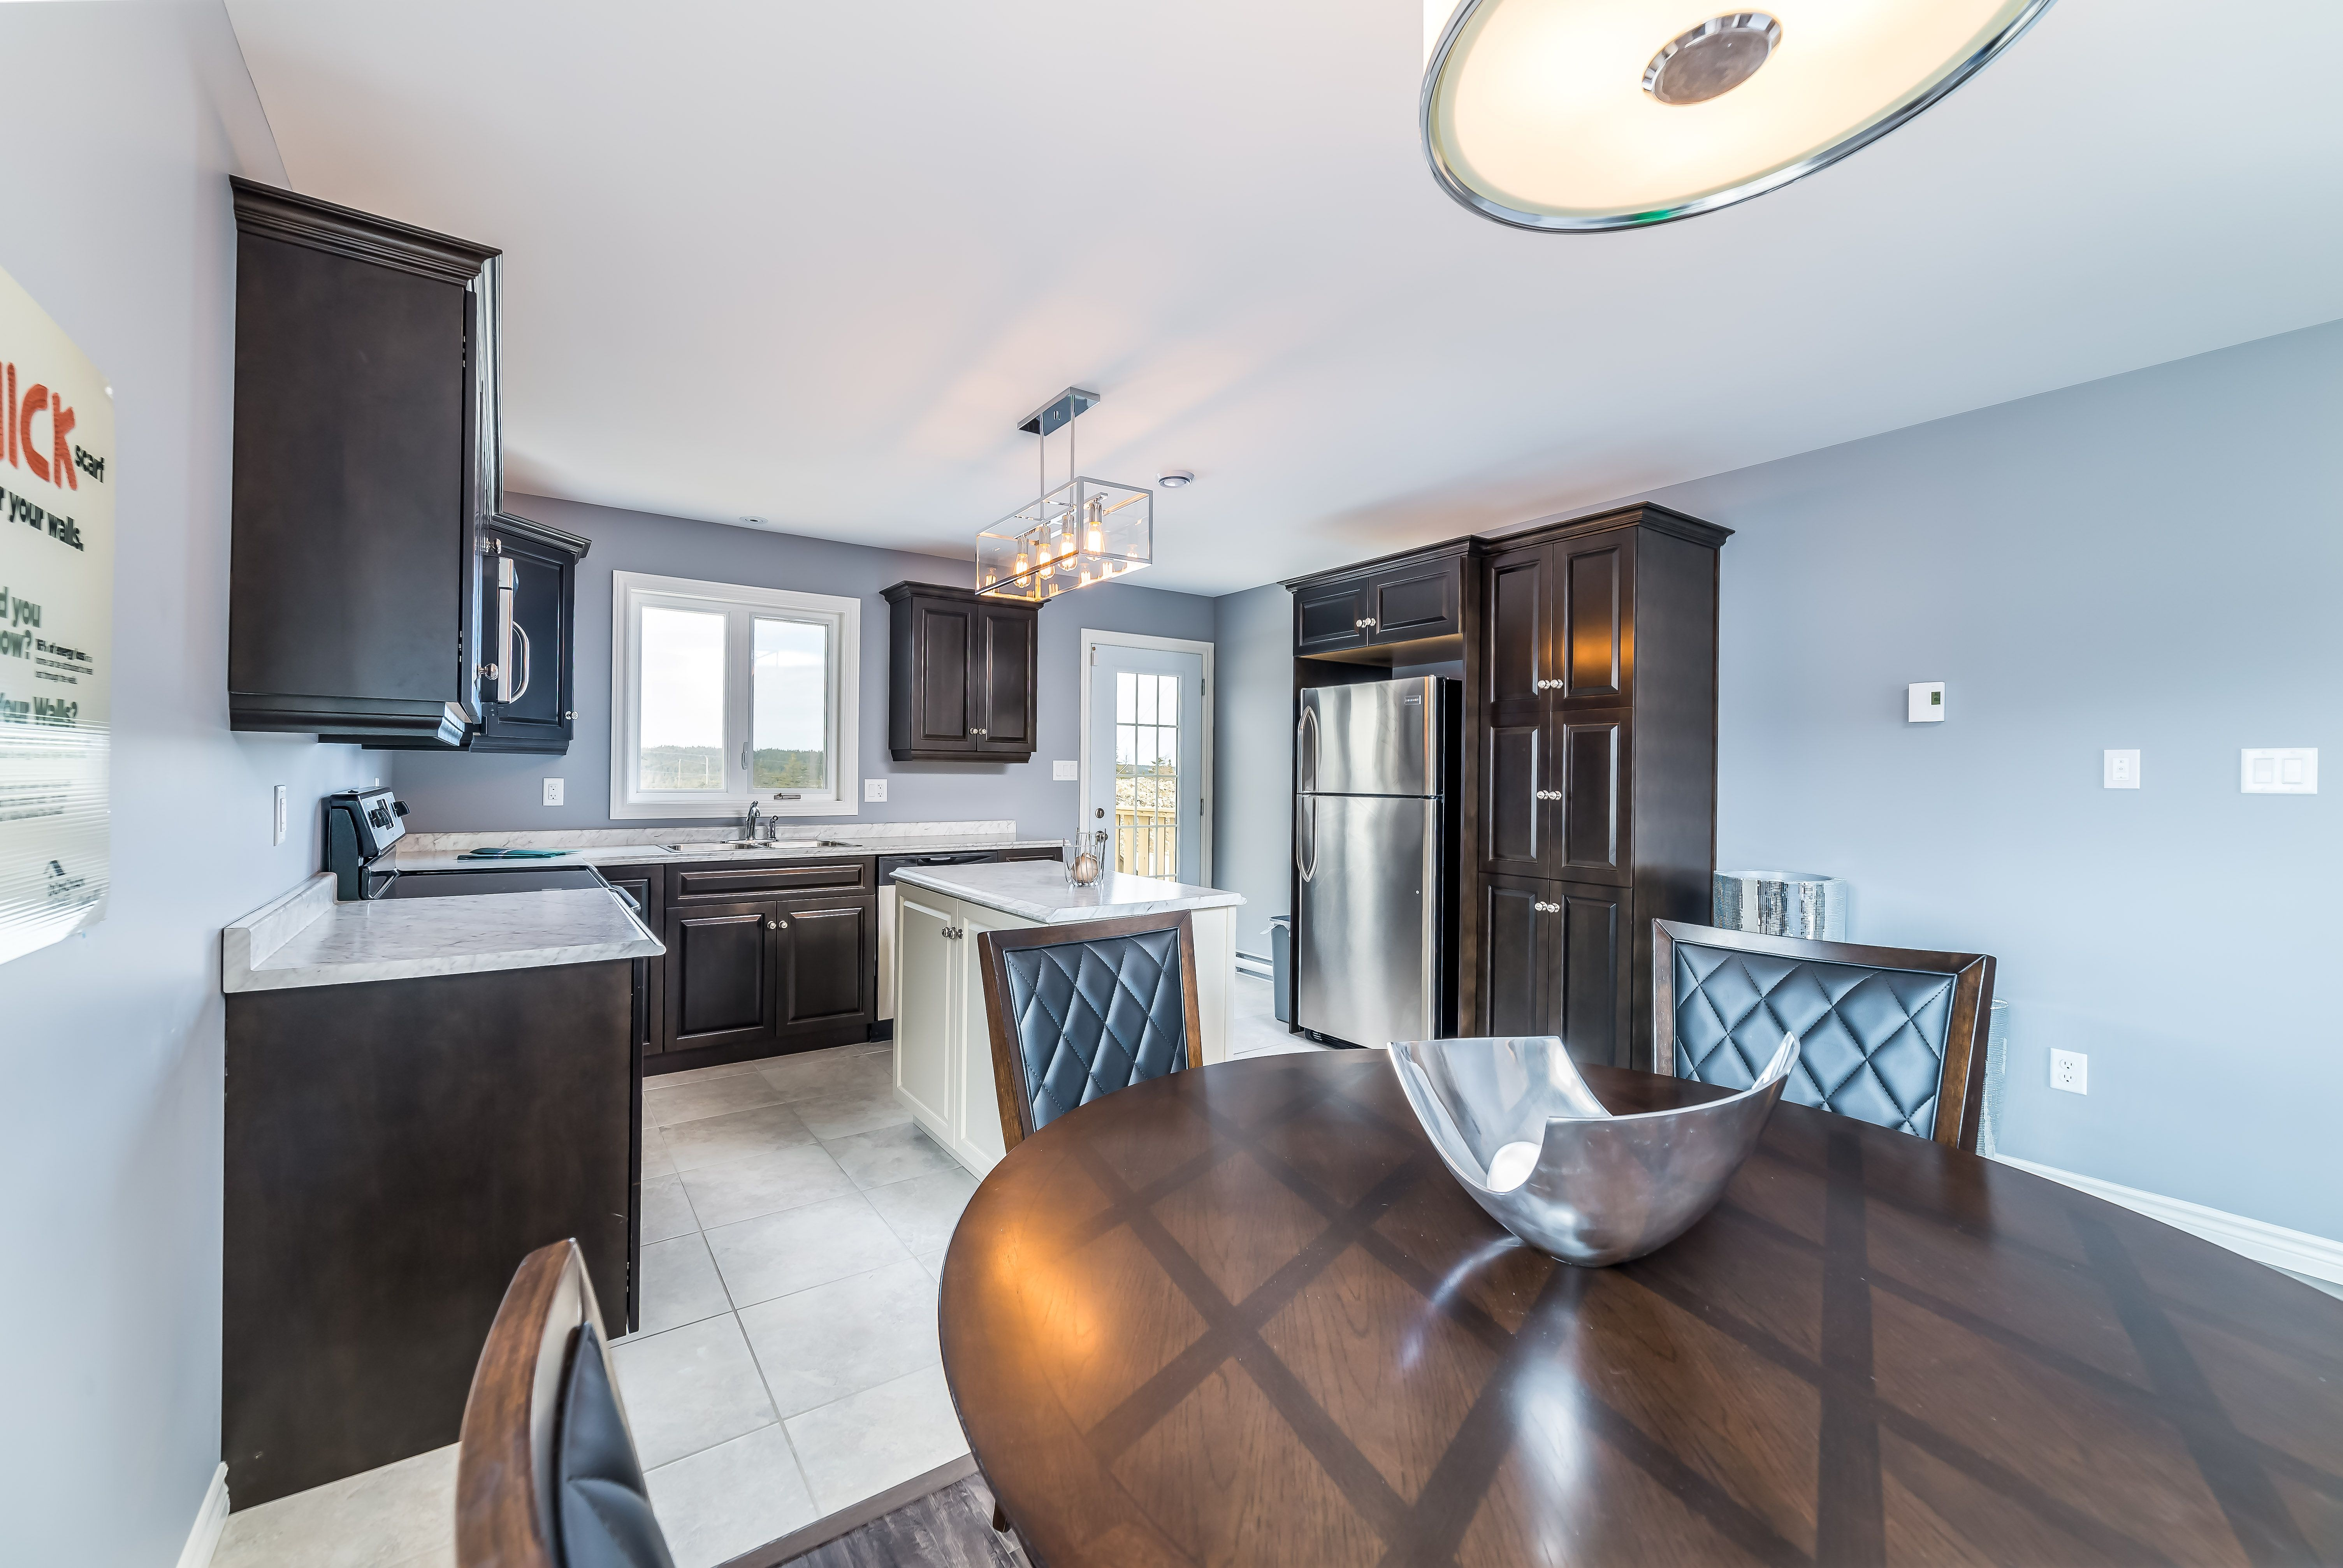 A Look At The Dining Area And Kitchen In Our Model Homecome See Mesmerizing Kitchen Model Design Inspiration